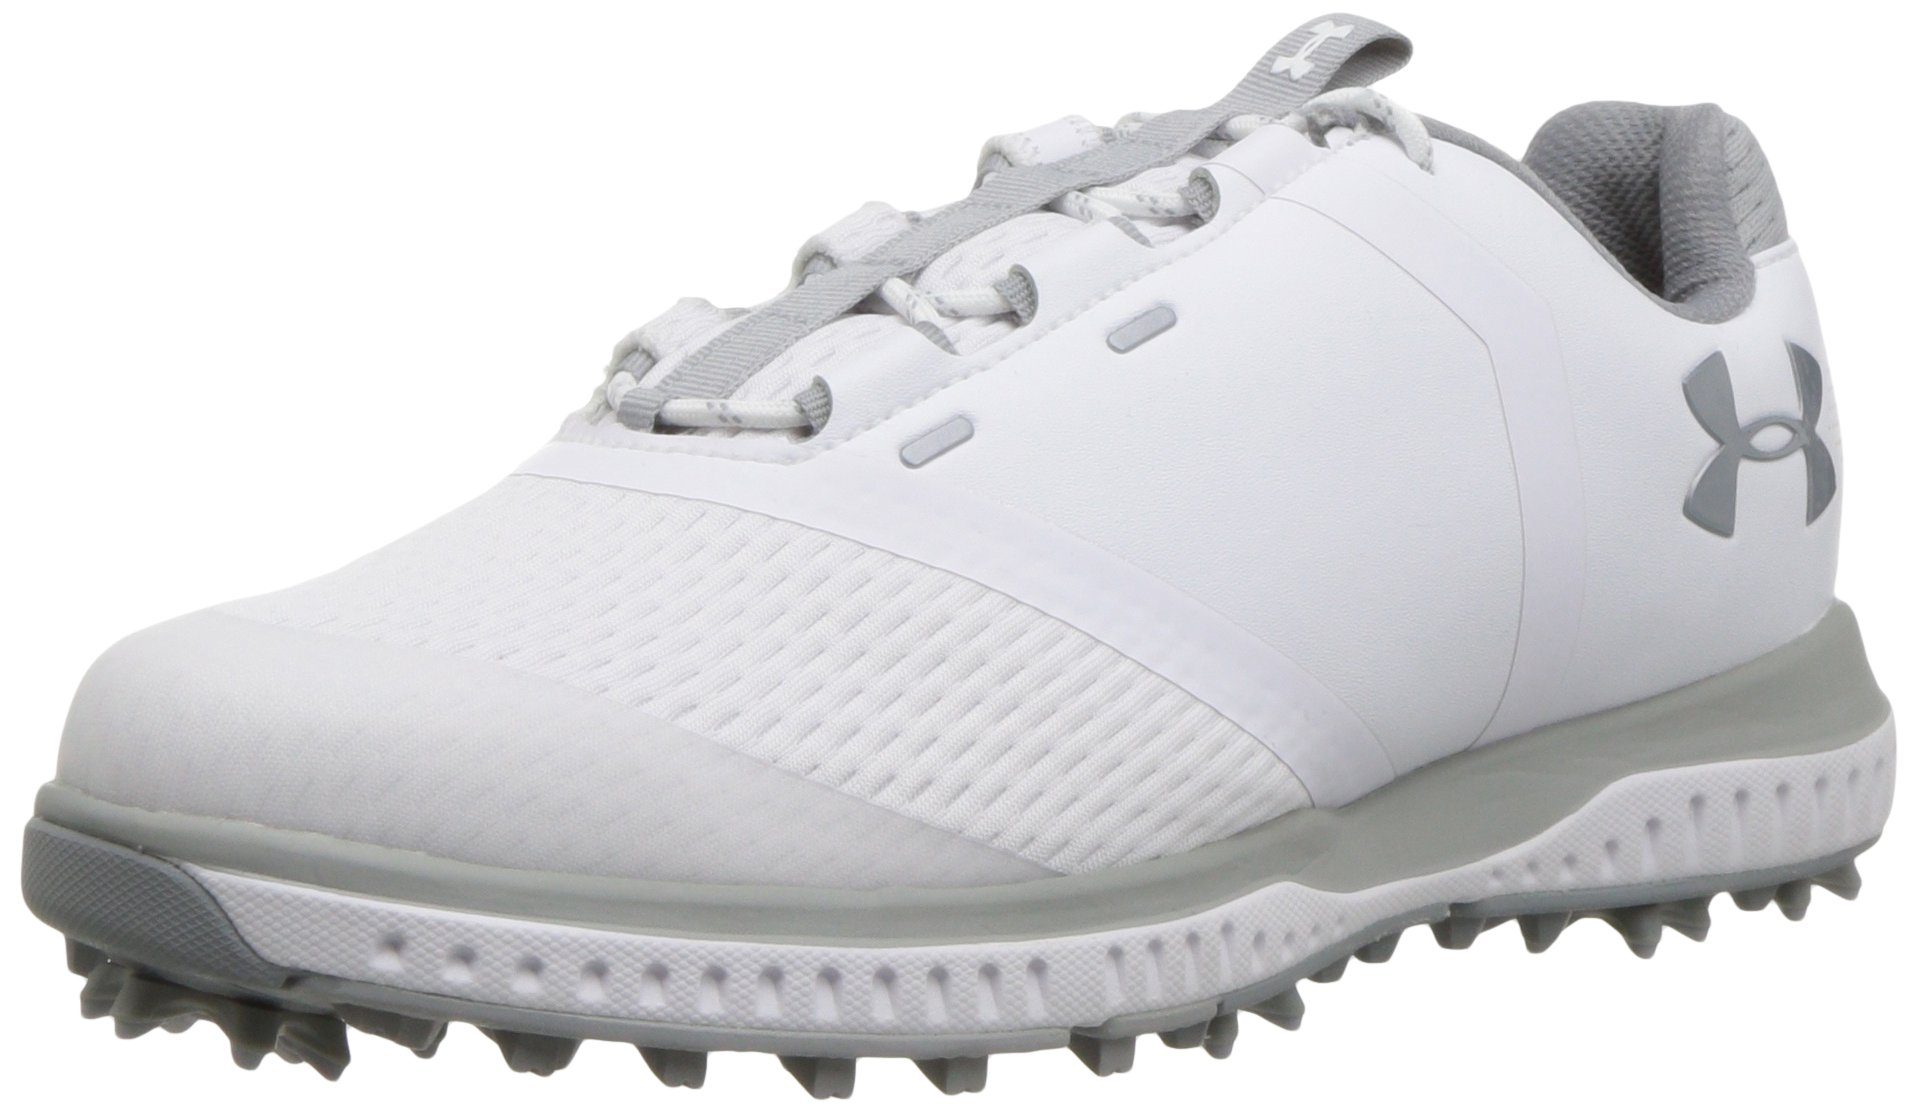 Under Armour Women's Fade RST Golf Shoe, White (102)/Overcast Gray, 10